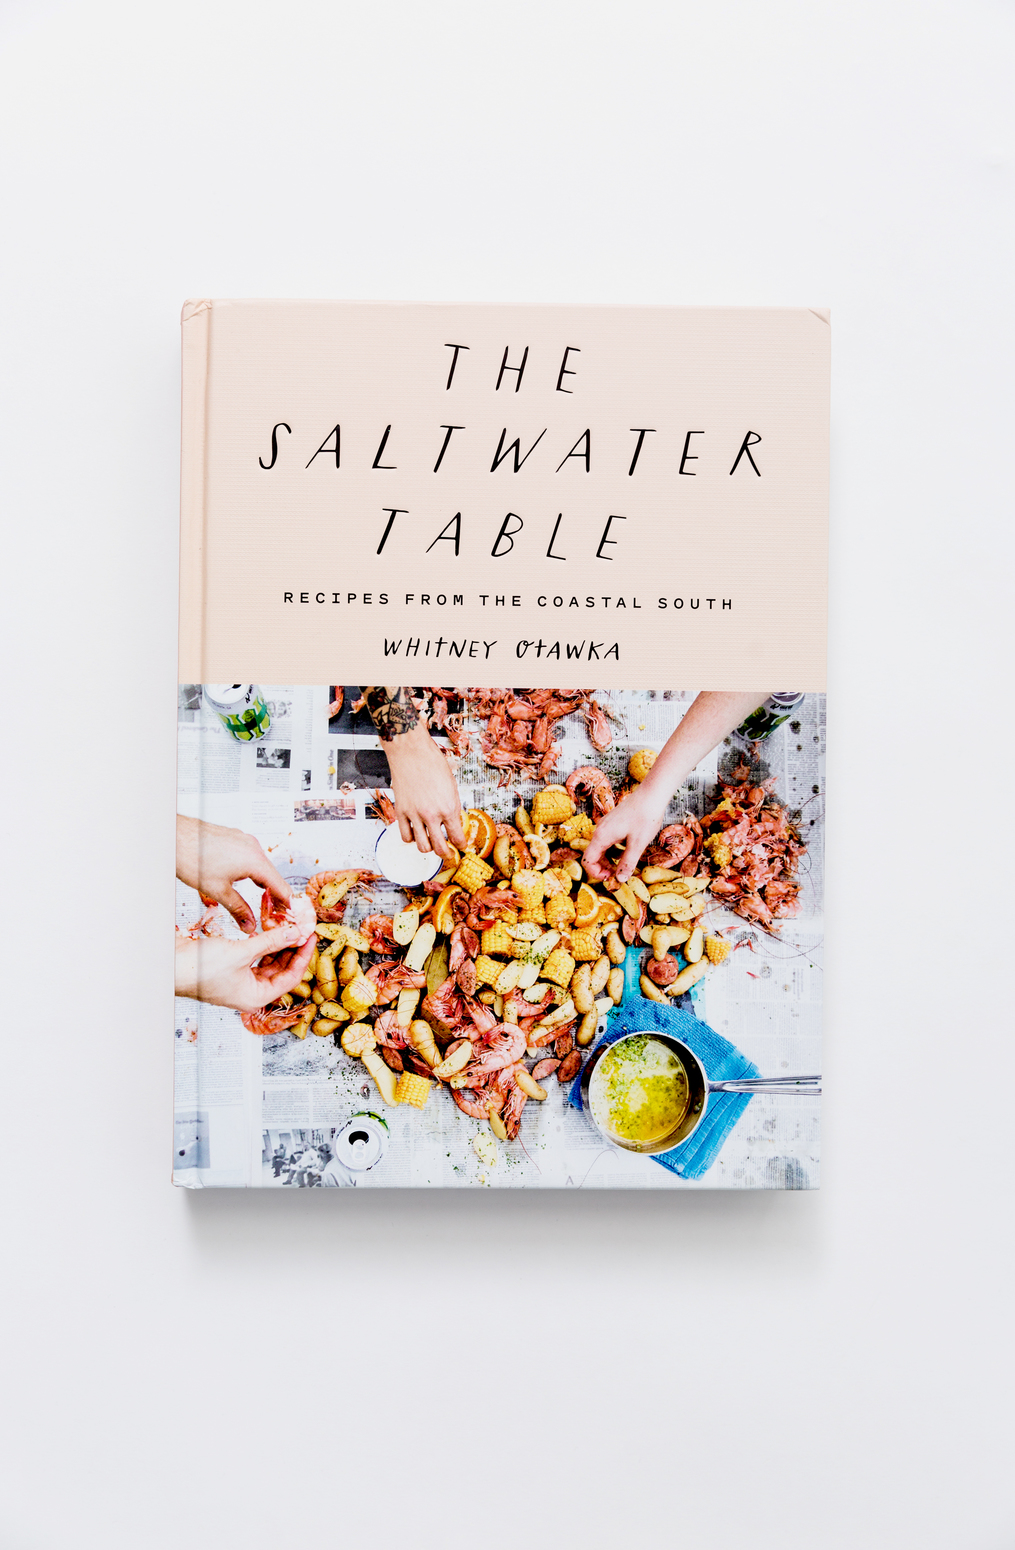 Book   the saltwater table recipes from the coastal south   whitney otawka   january 2020   abraham rowe 2